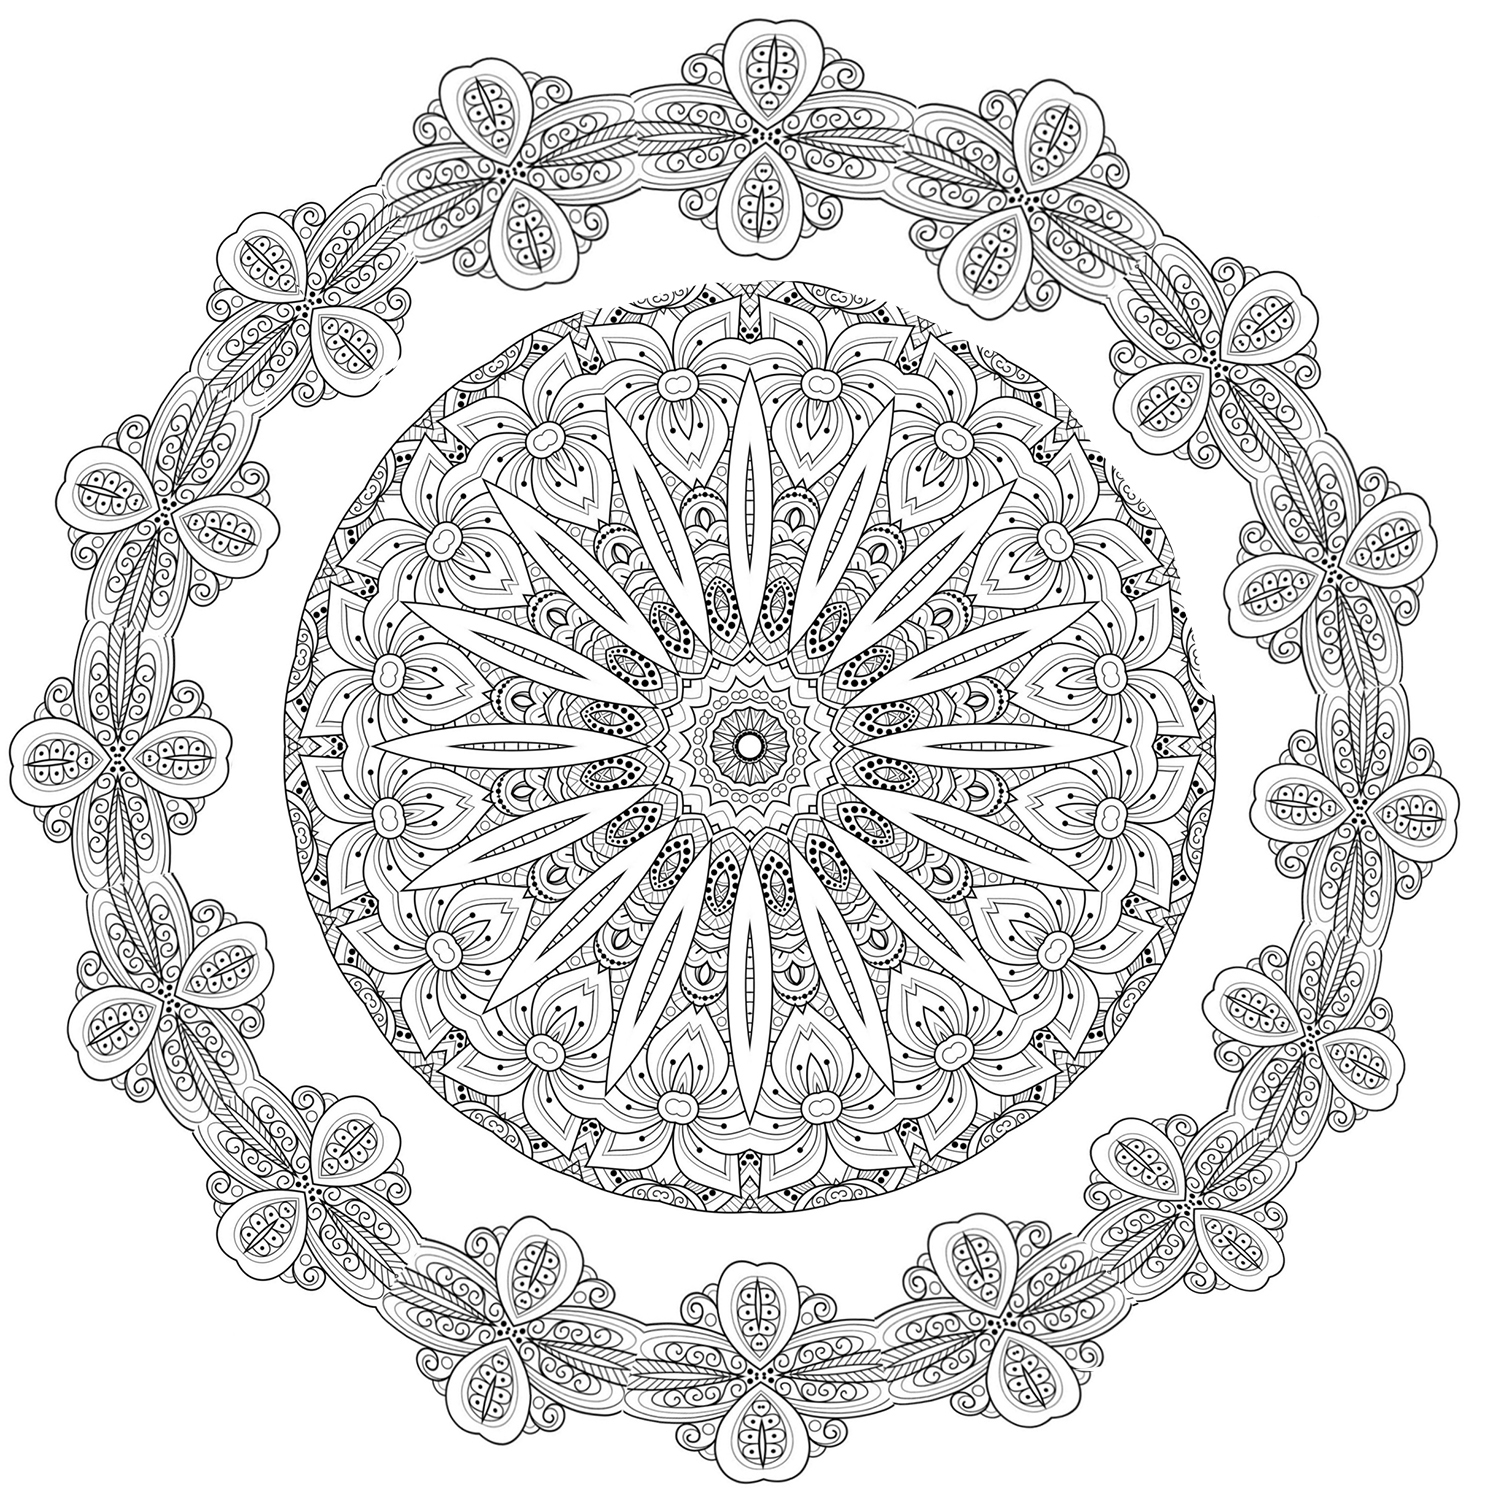 Mandala Christmas coloring